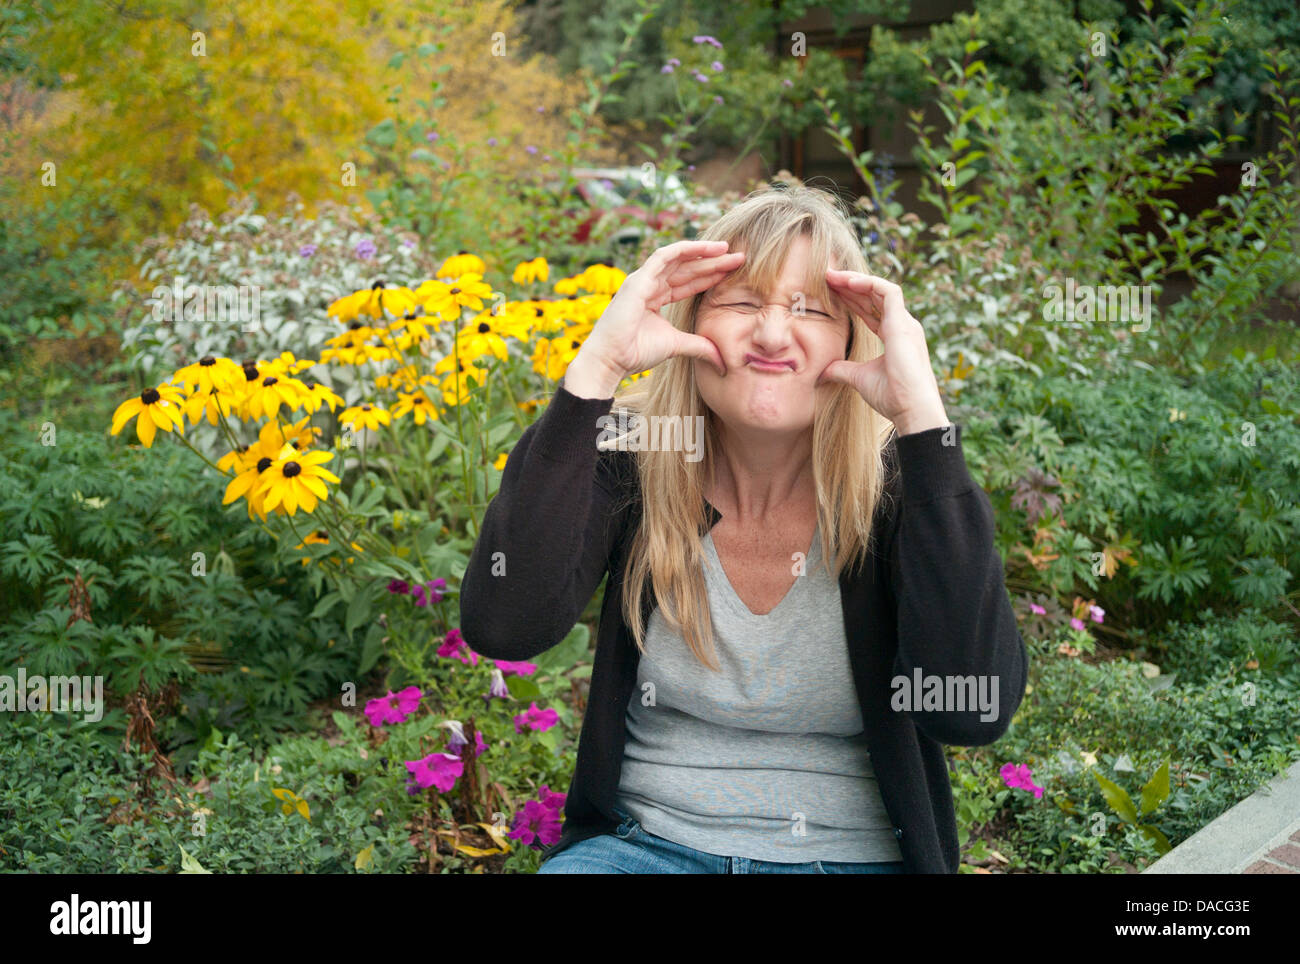 Woman making a goofy face. - Stock Image